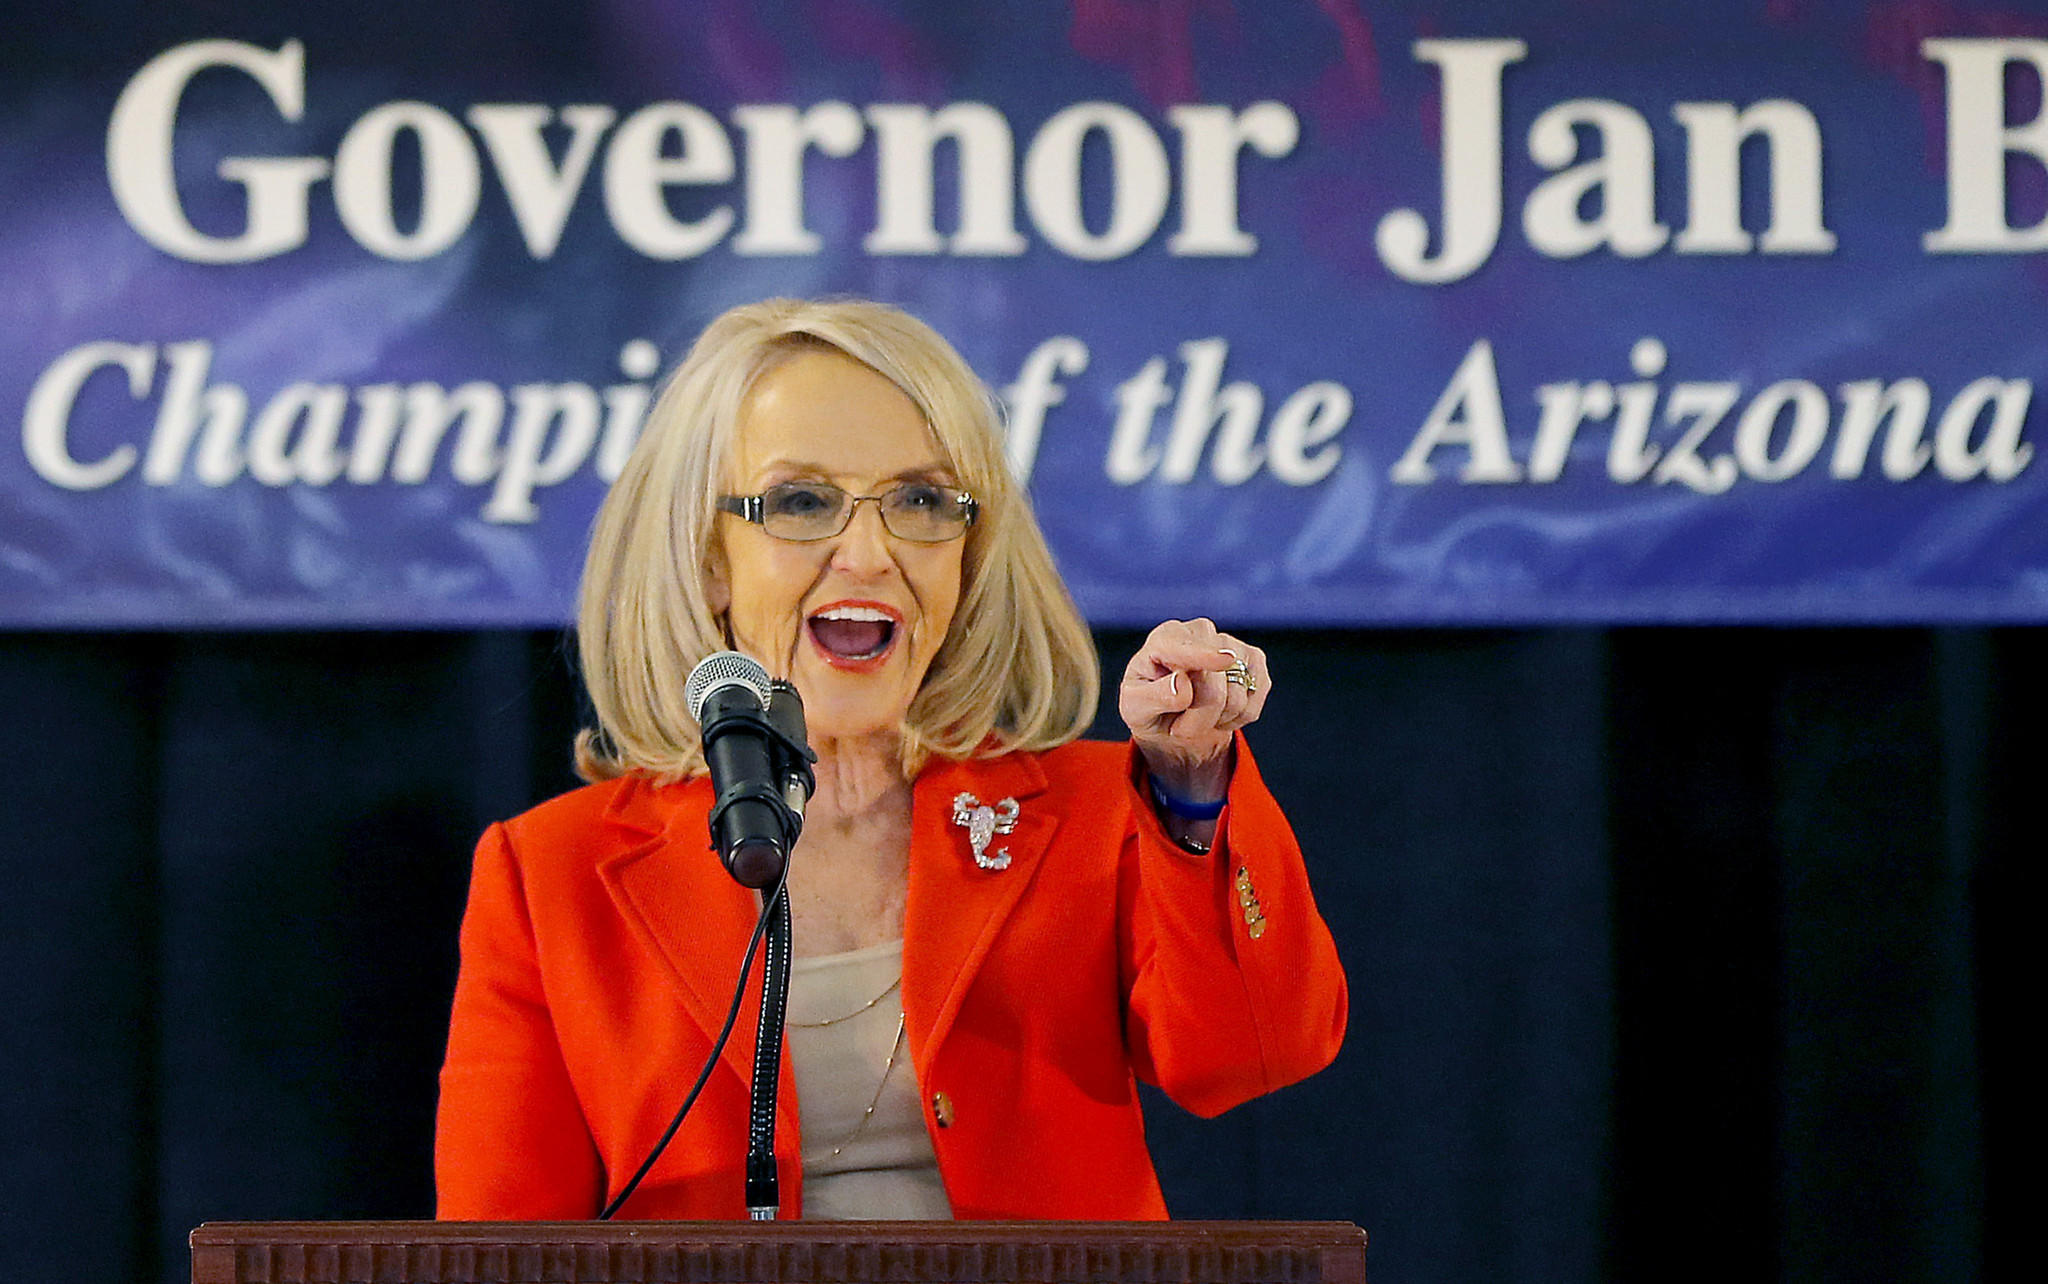 Arizona Gov. Jan Brewer announces she will not seek a third term and will retire at the end of her current term.